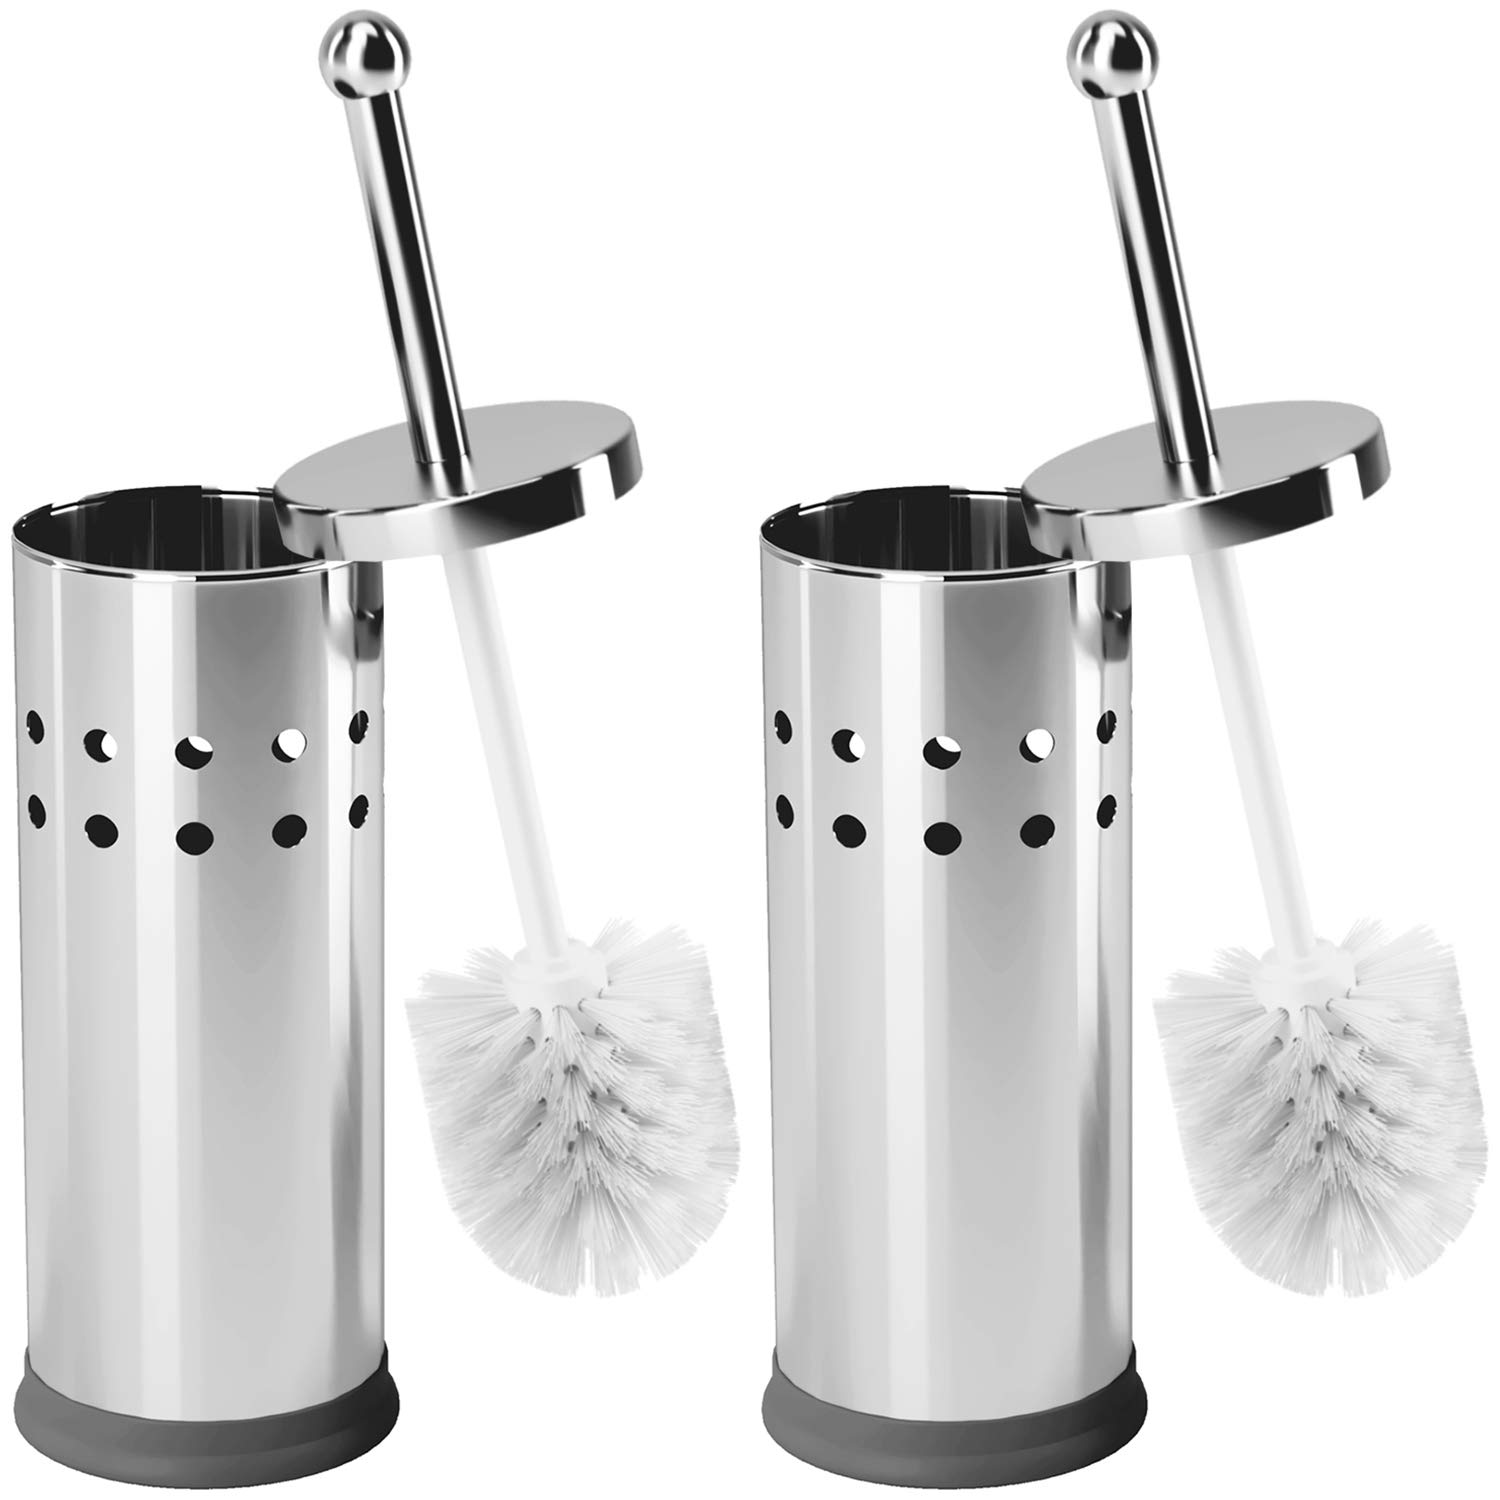 Home Intuition Hideaway Compact Vented Toilet Brush Scrubber Cleaner and Holder, Chrome, 2 Pack by Home Intuition